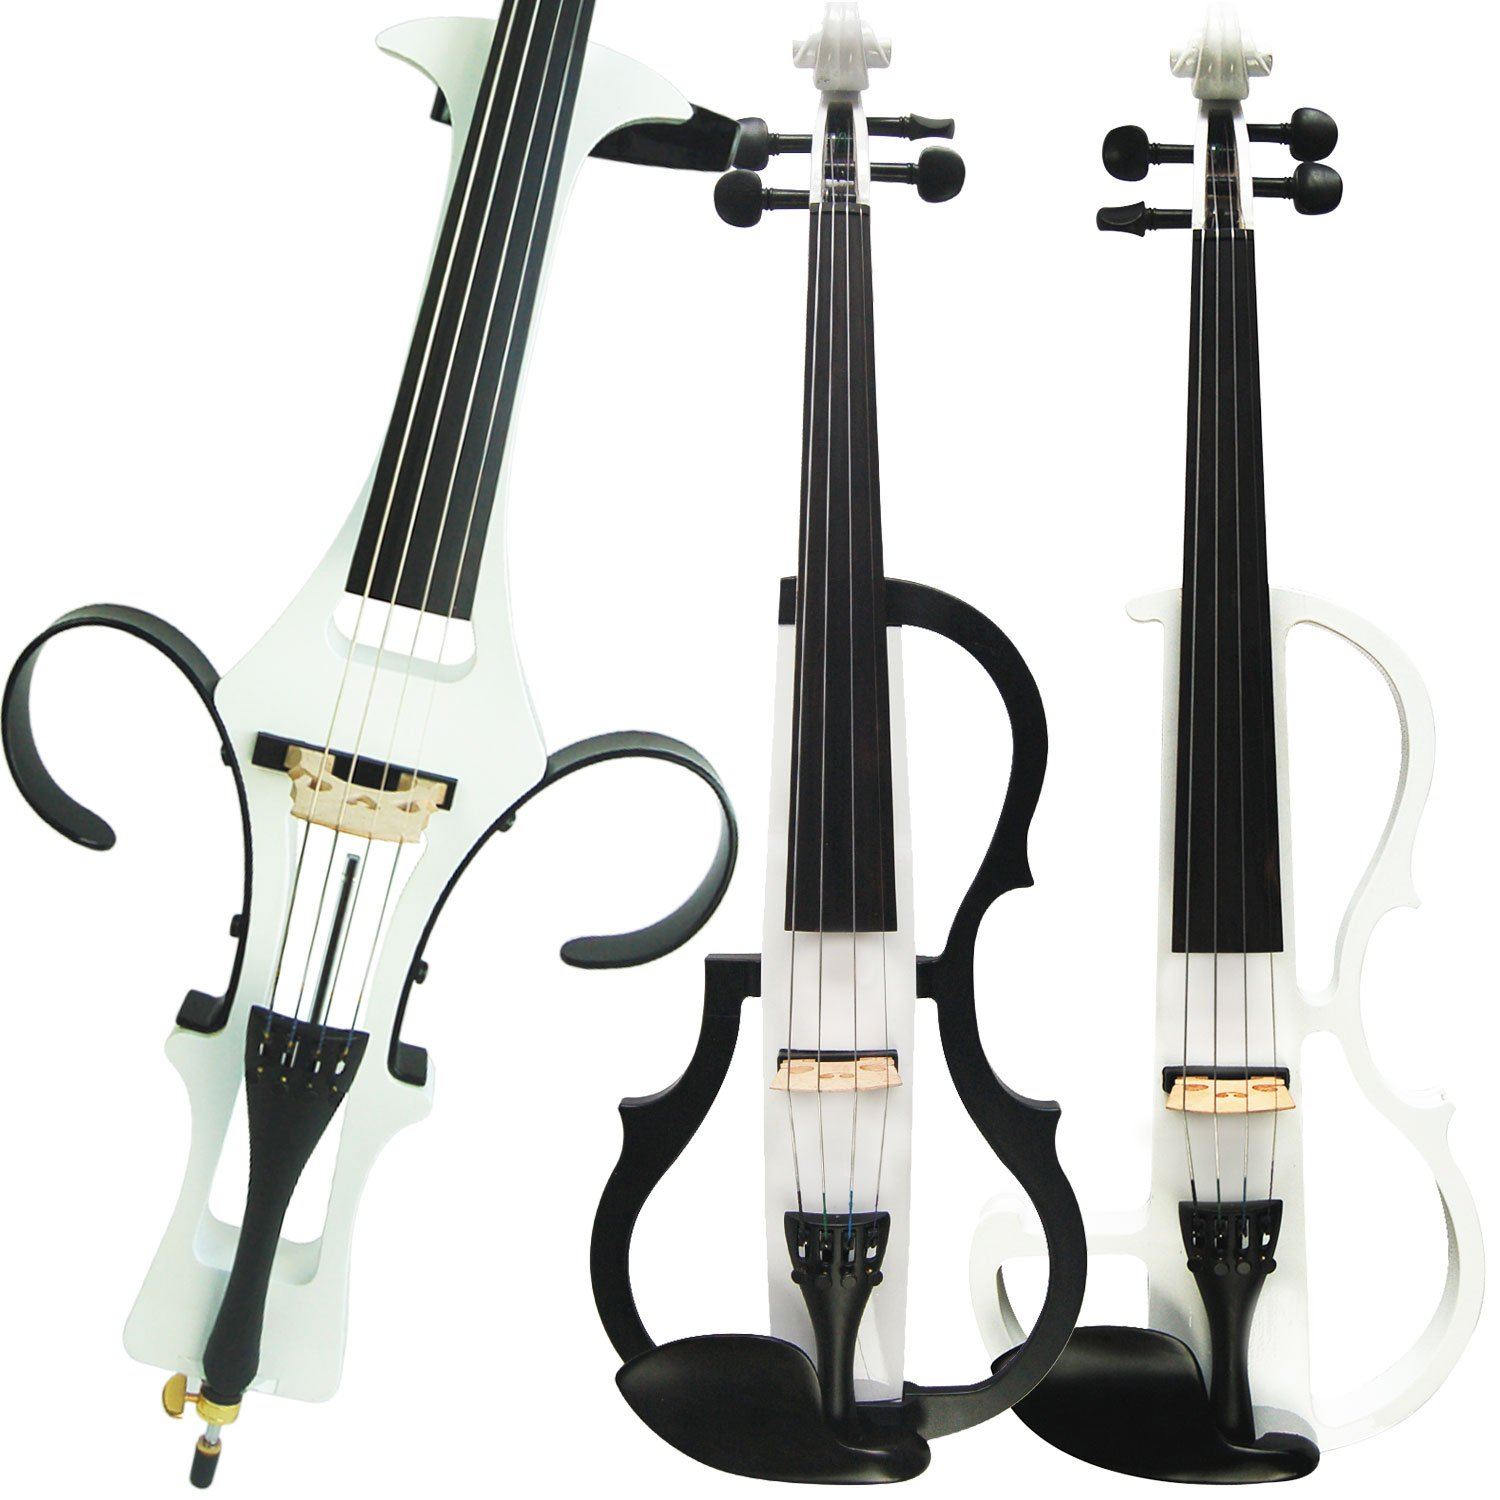 Aliyes Handmade Professional Solid Wood Electric Cello 4/4 Full Size Silent Electric Cello-1801